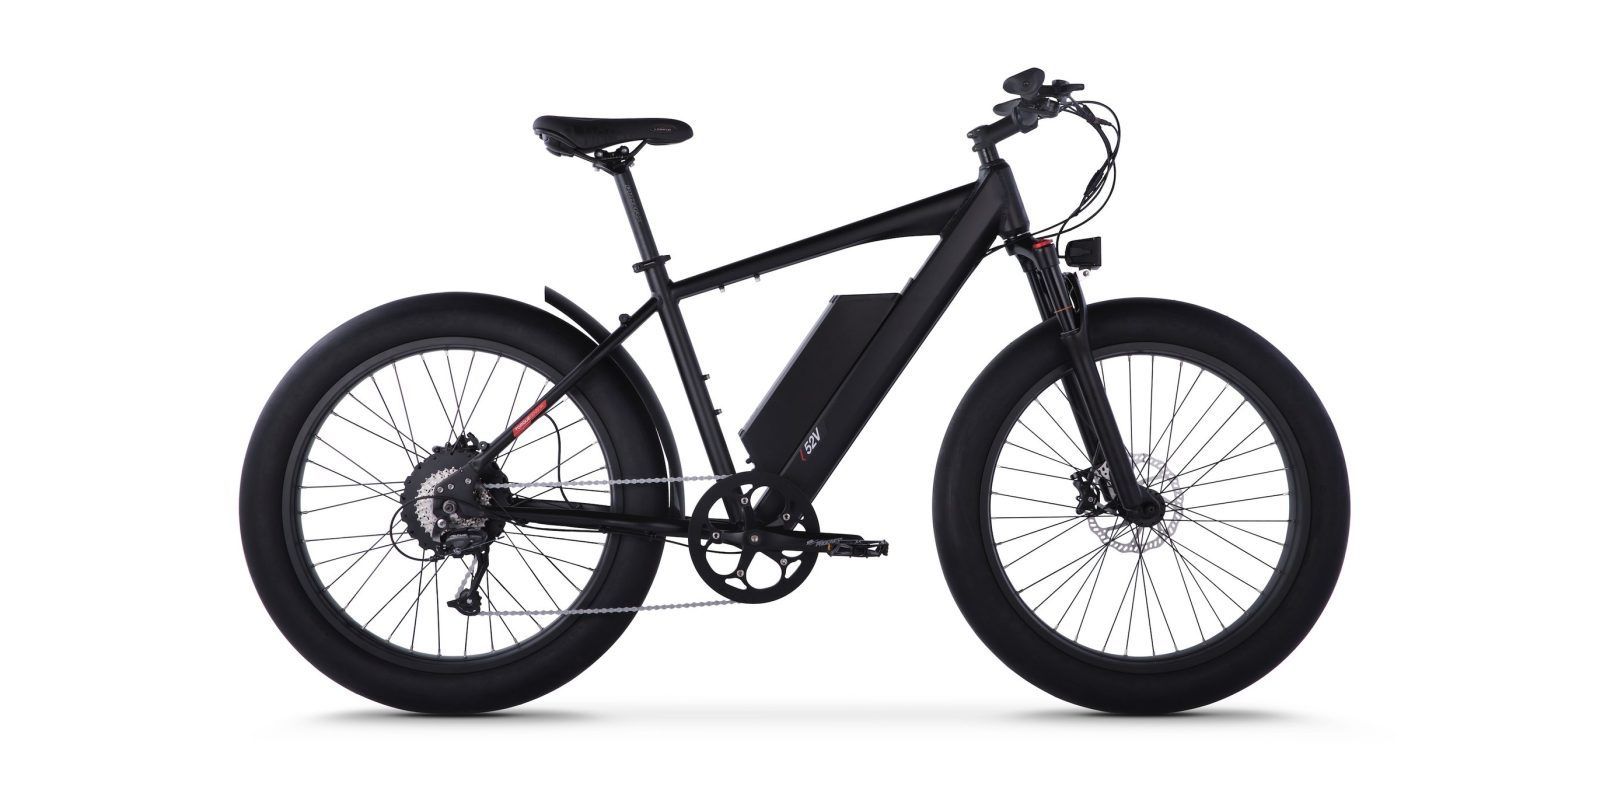 juiced bikes pushes the envelope with a new 40 mph fat tire electric